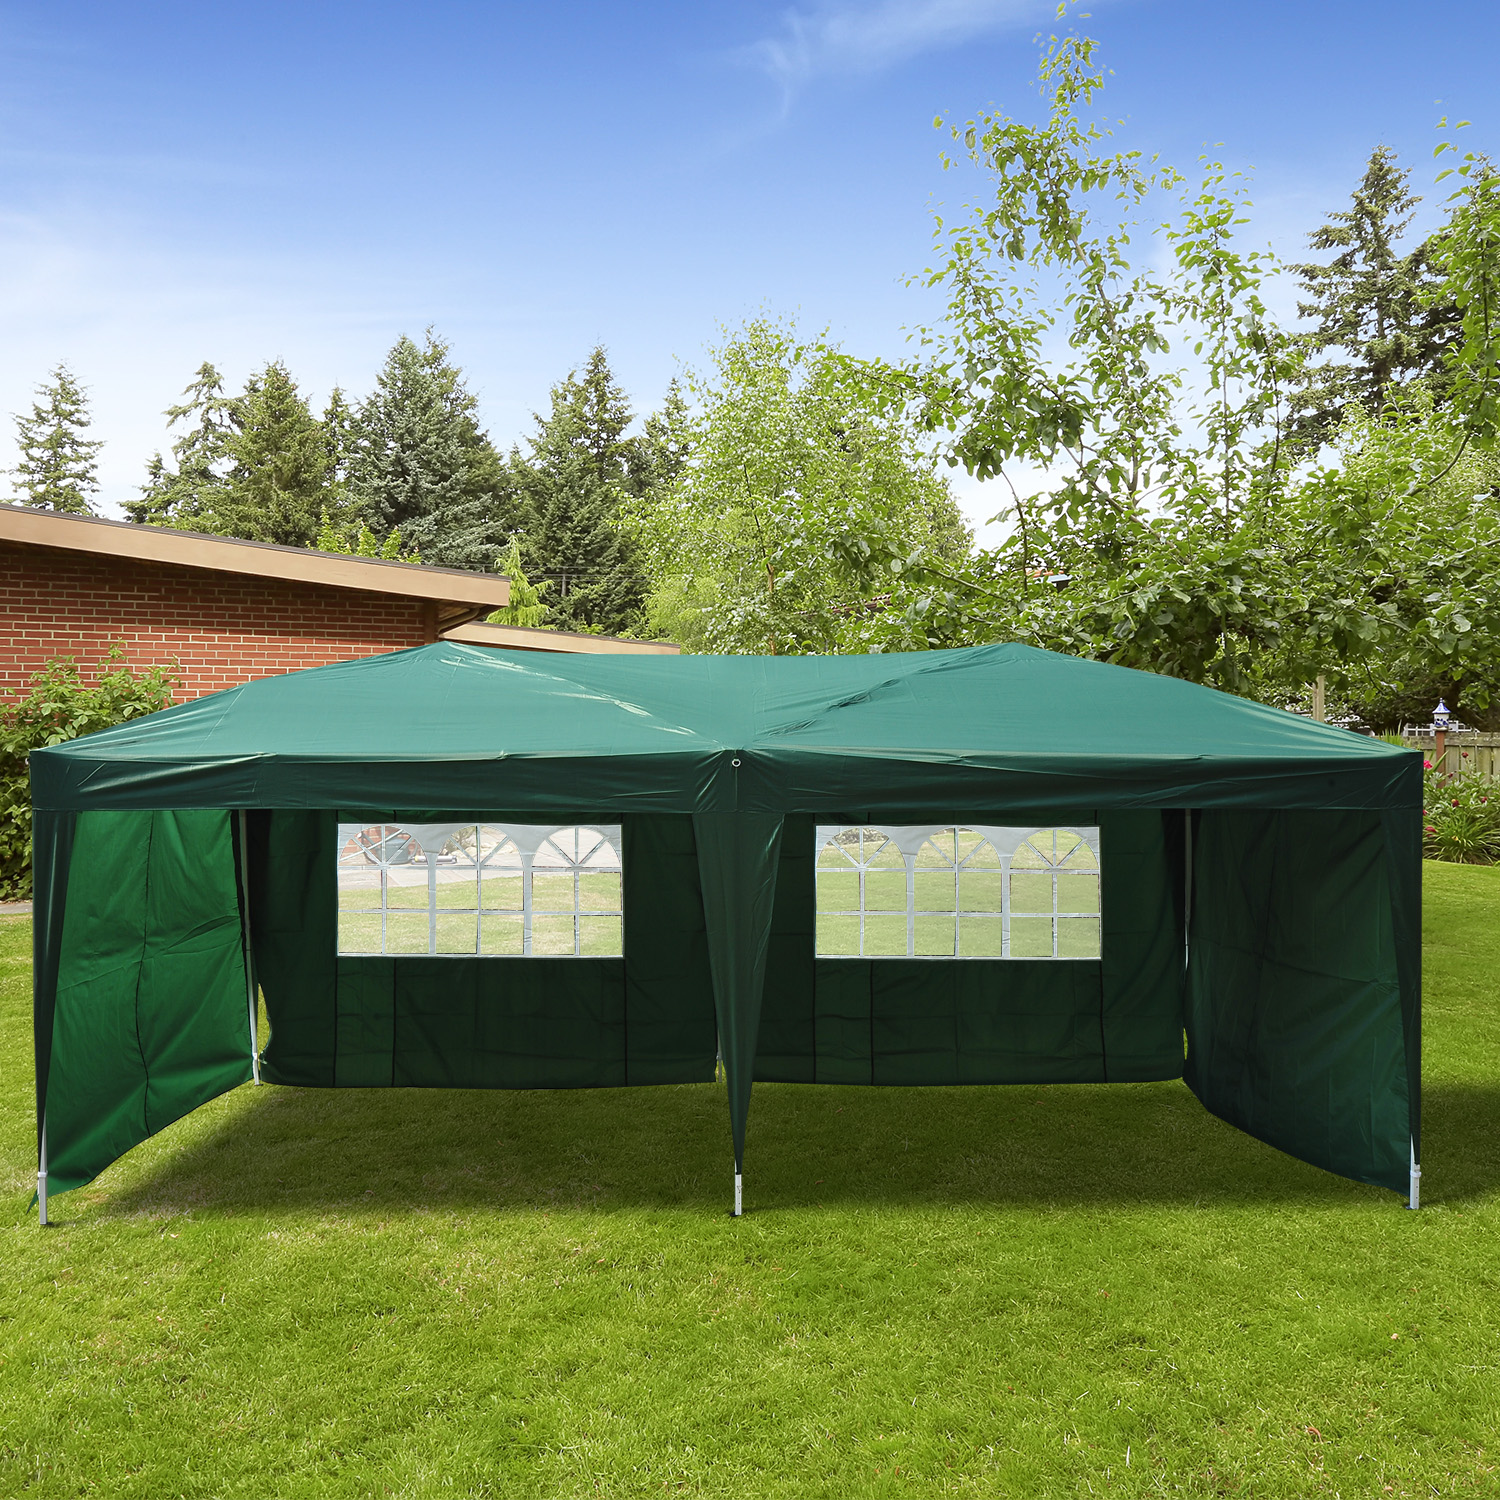 Image of CAD $219.99 Outsunny 10x20ft Easy Pop up Party Tent Outdoor Sunshade Wedding Shelter with 4 Side Walls and Carrying Bag Green / Instant Canopy Gazebo (Green) w/ Canada 25093582677